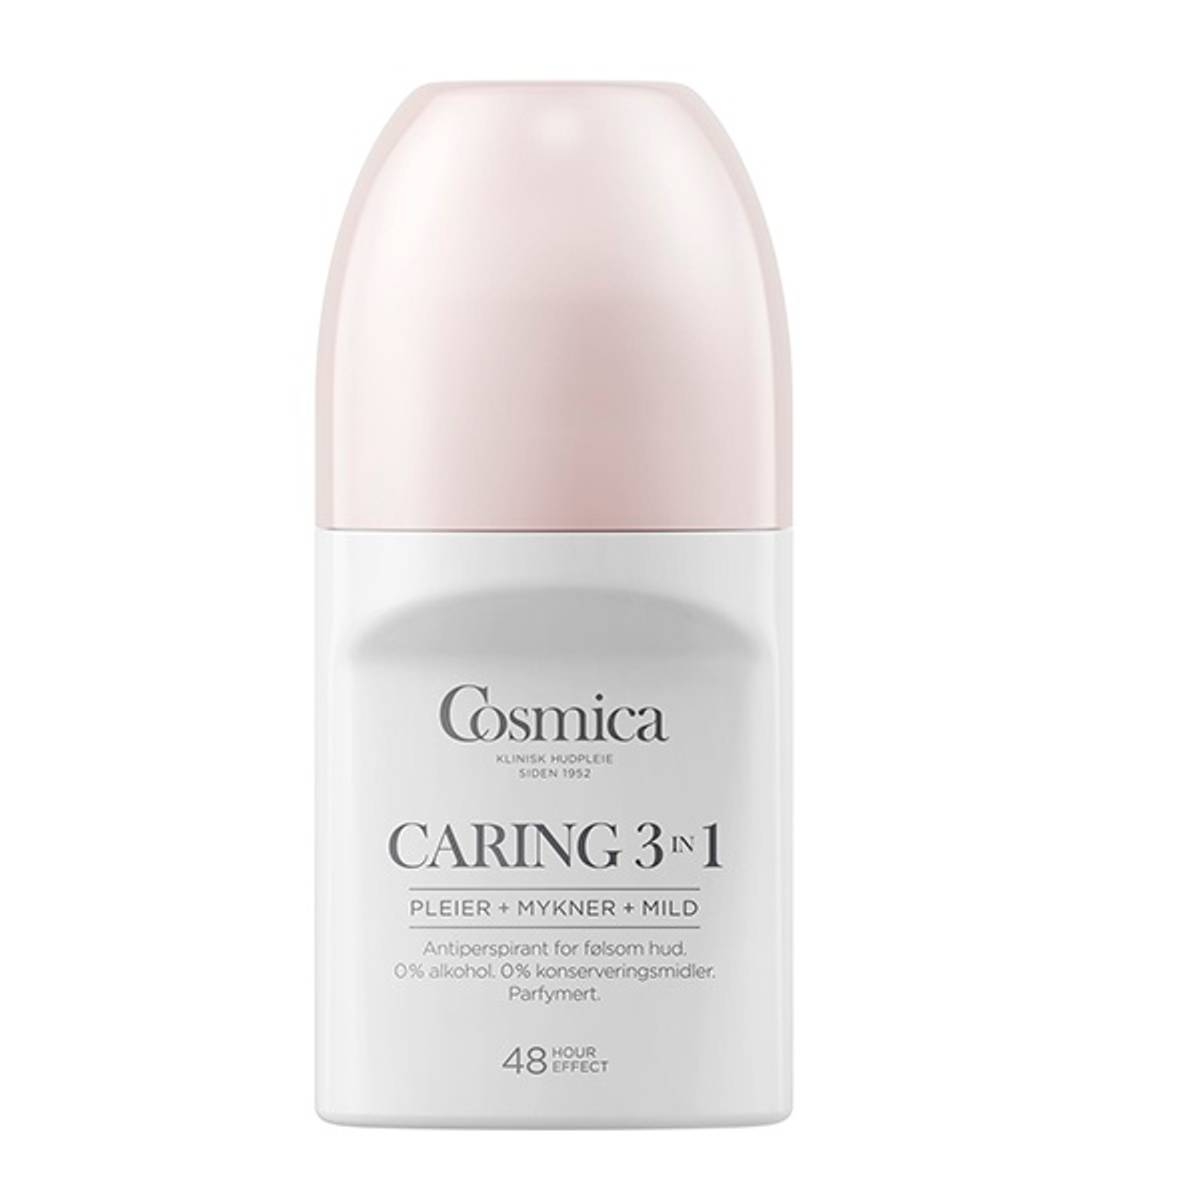 Cosmica deo caring 3i1 m/p 50 ml